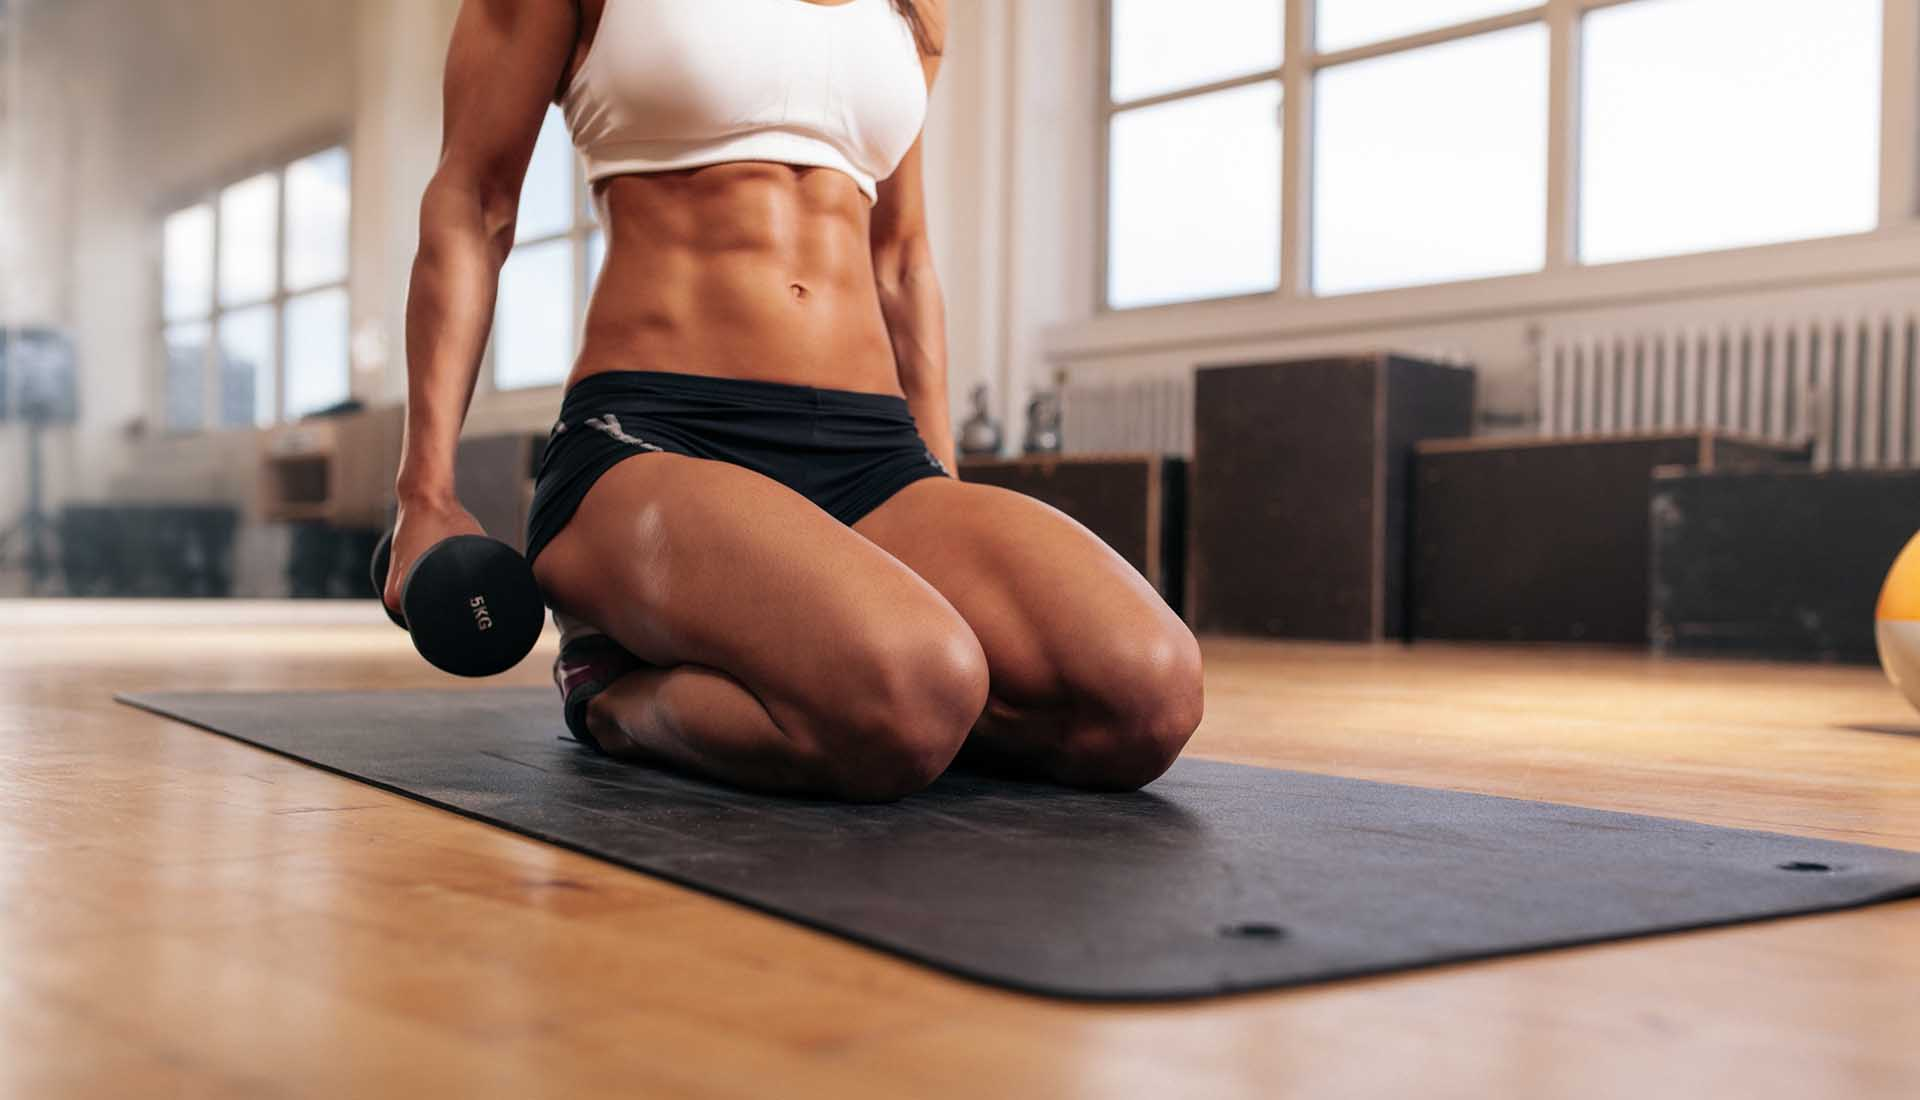 Cropped image of muscular woman exercising with dumbbells while sitting on fitness mat in gym.